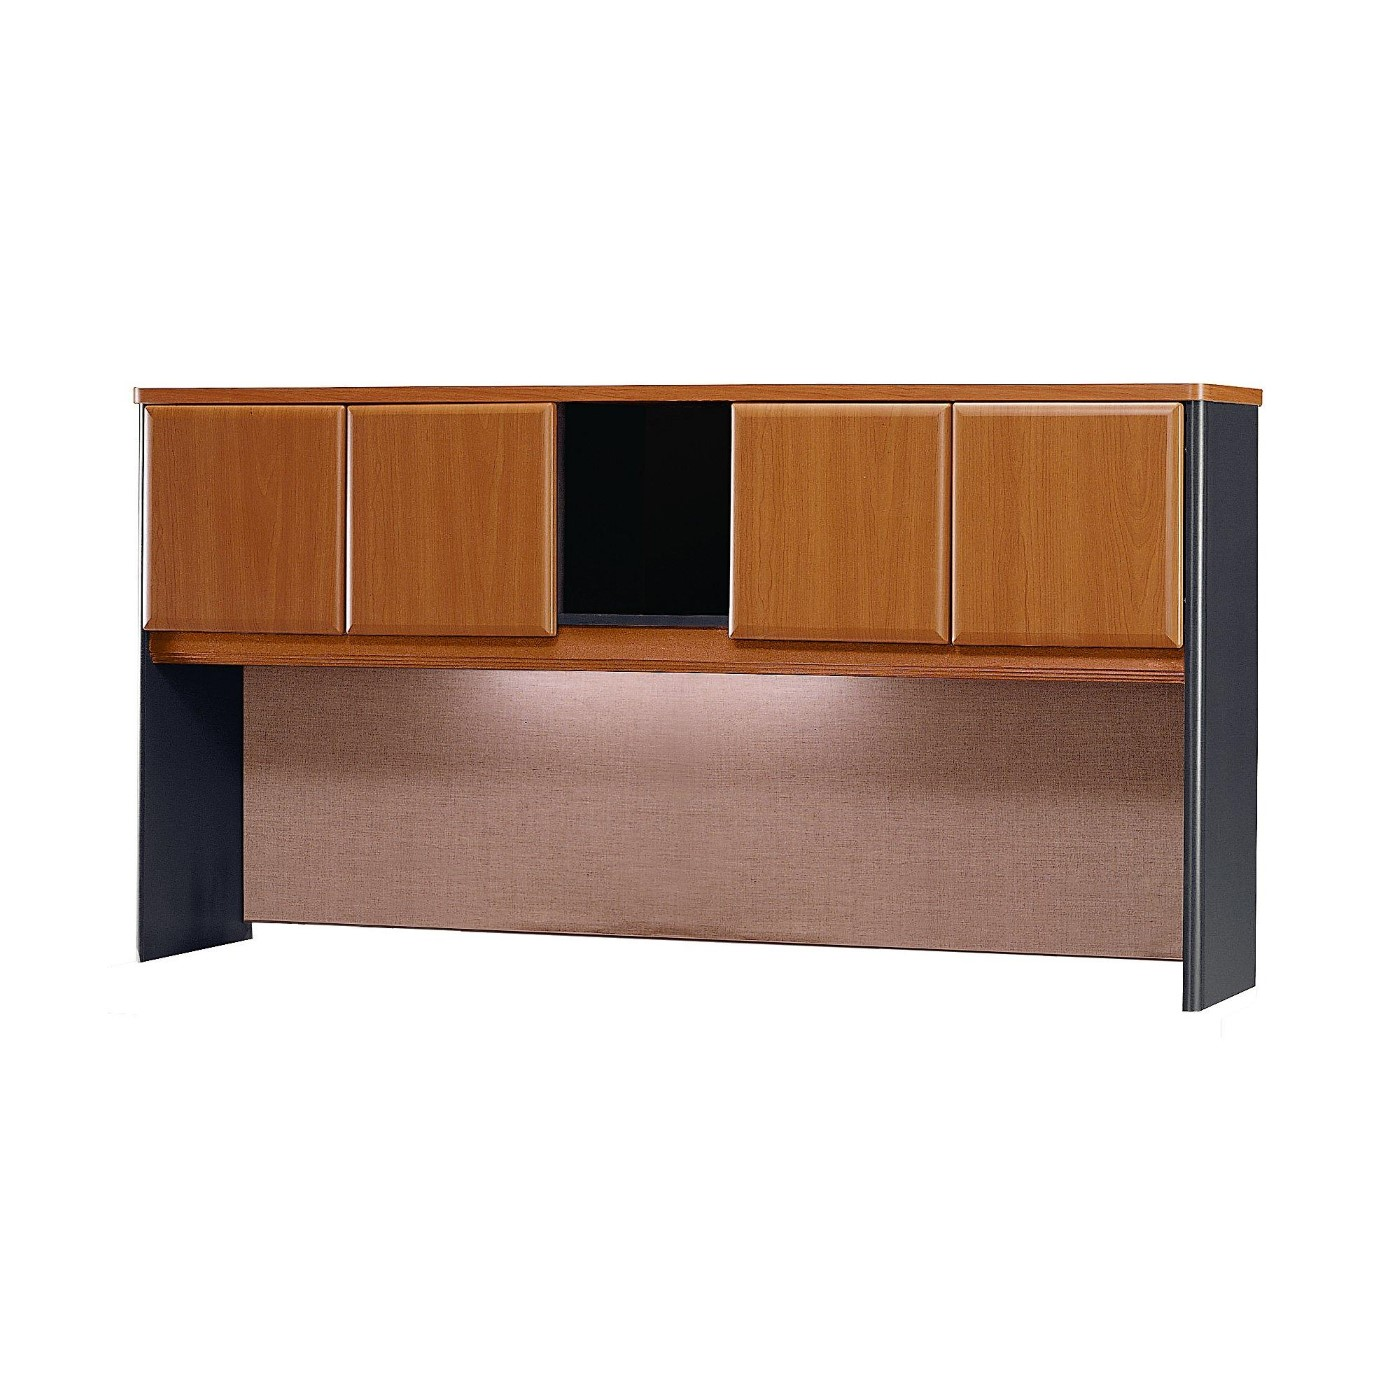 BUSH BUSINESS FURNITURE SERIES A 72W HUTCH. FREE SHIPPING.  SALE DEDUCT 10% MORE ENTER '10percent' IN COUPON CODE BOX WHILE CHECKING OUT. ENDS 5-31-20.